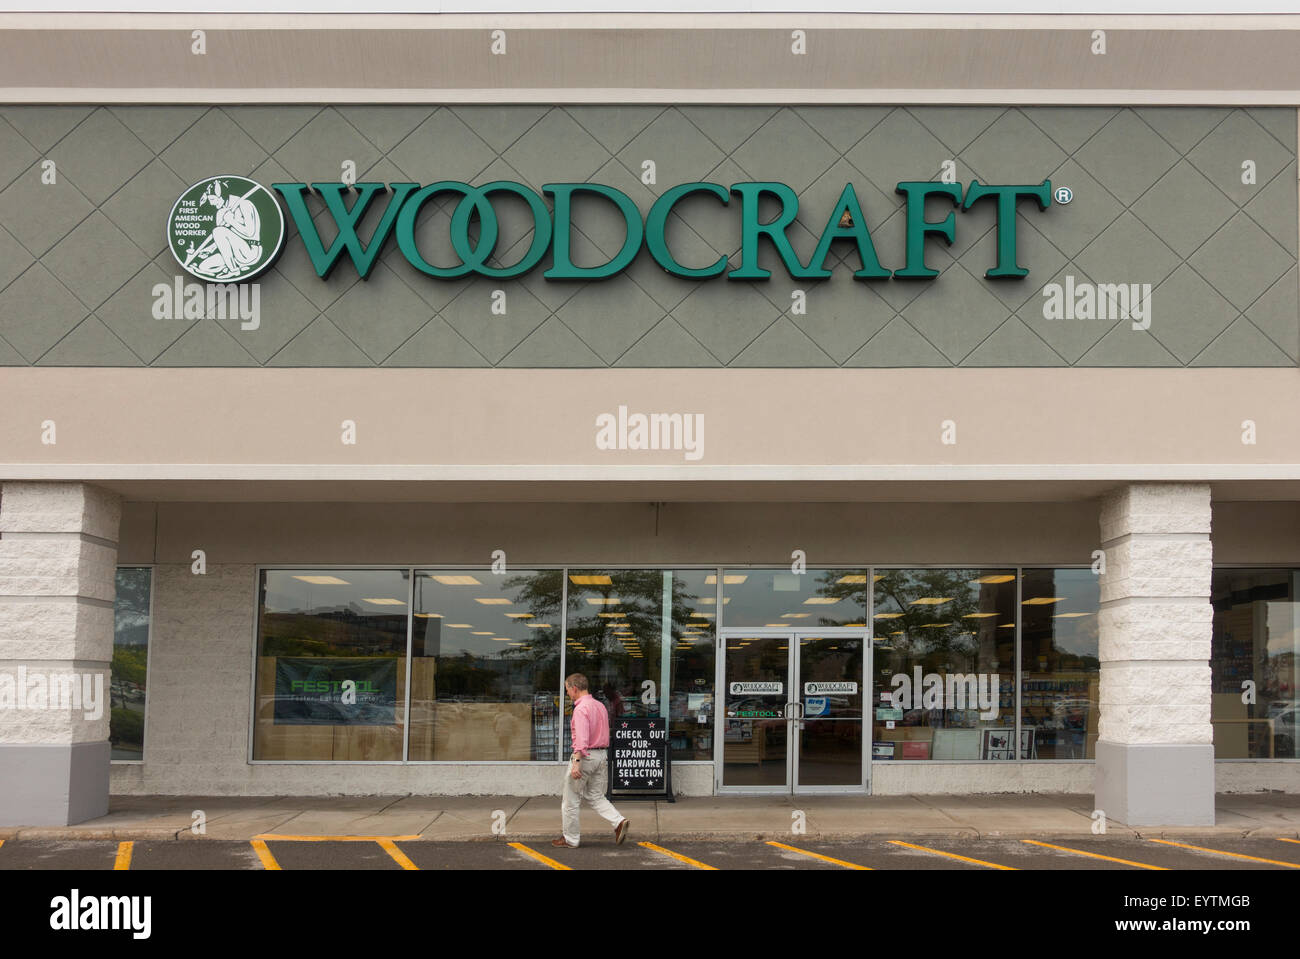 Woodcraft Store In Rochester New York Stock Photo 85980171 Alamy